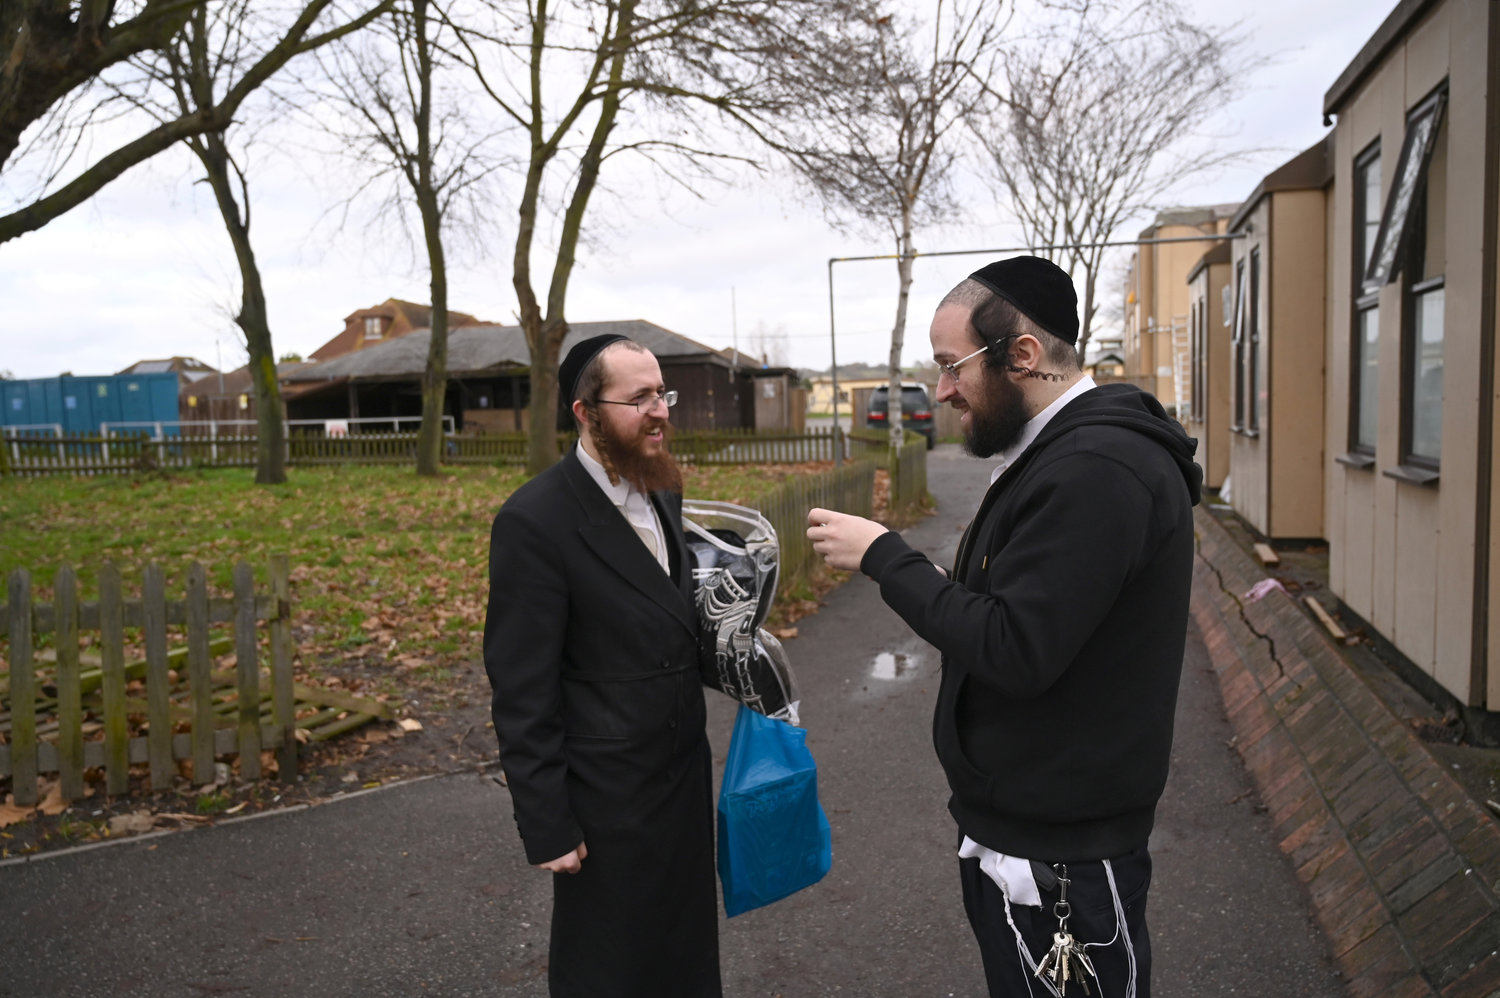 Jacob Gross, right, speaks to a Canvey Island resident outside the town's synagogue on Dec. 13.